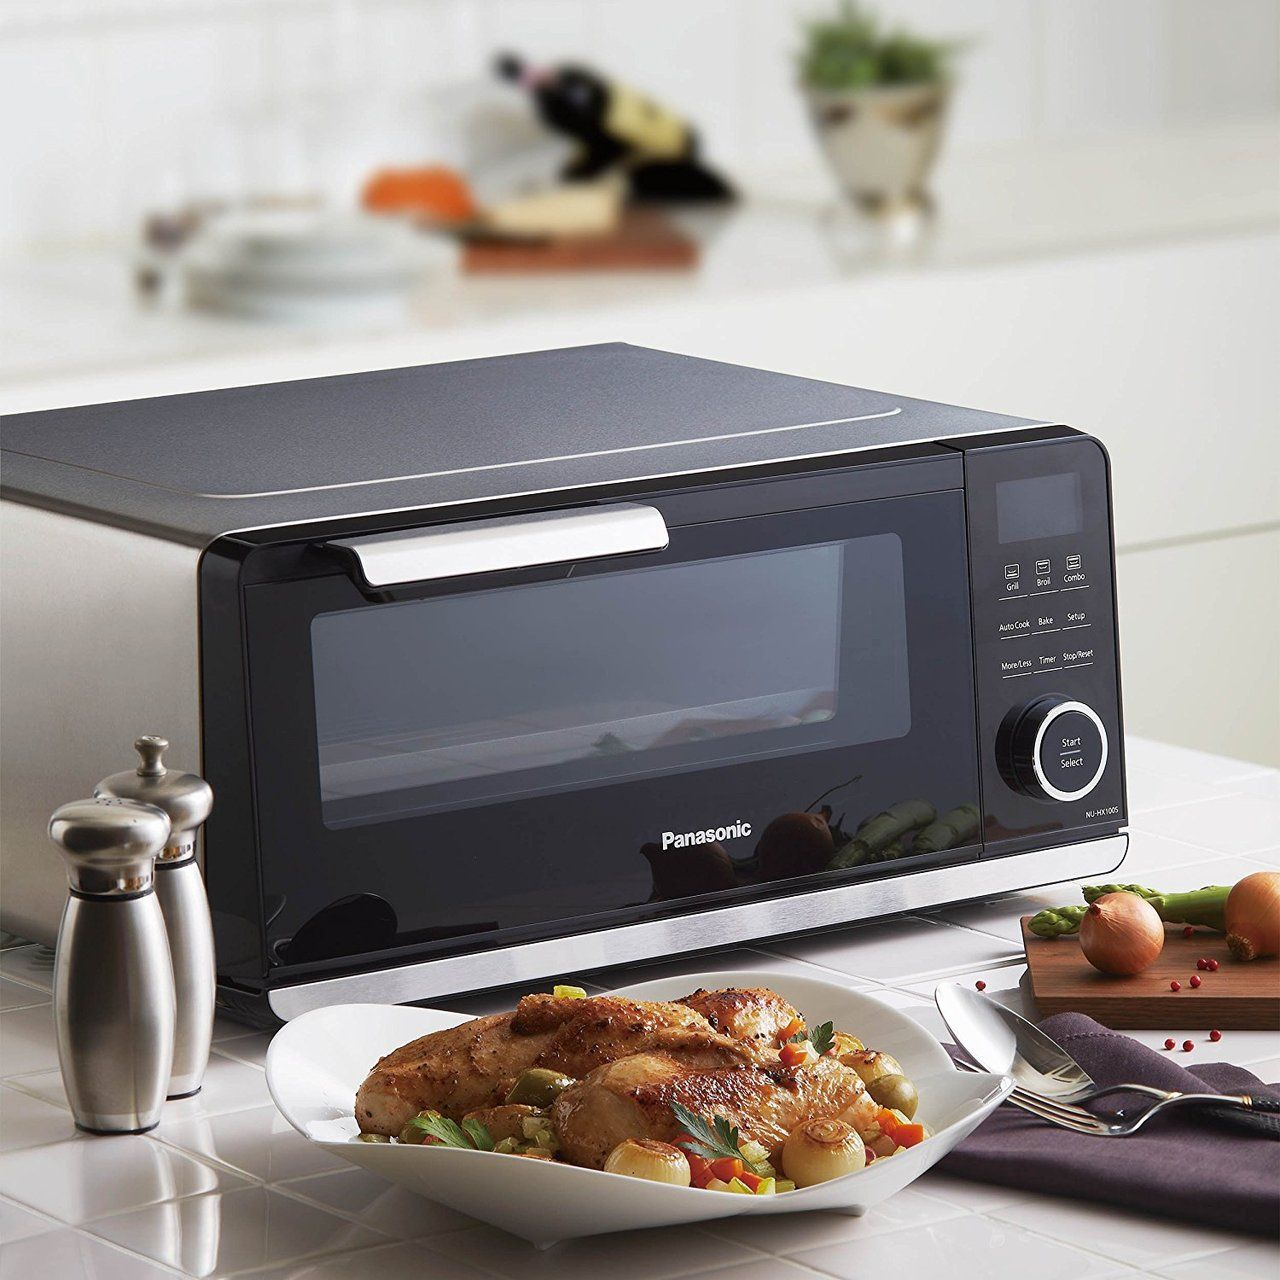 Panasonic Countertop Induction Oven With Images Countertop